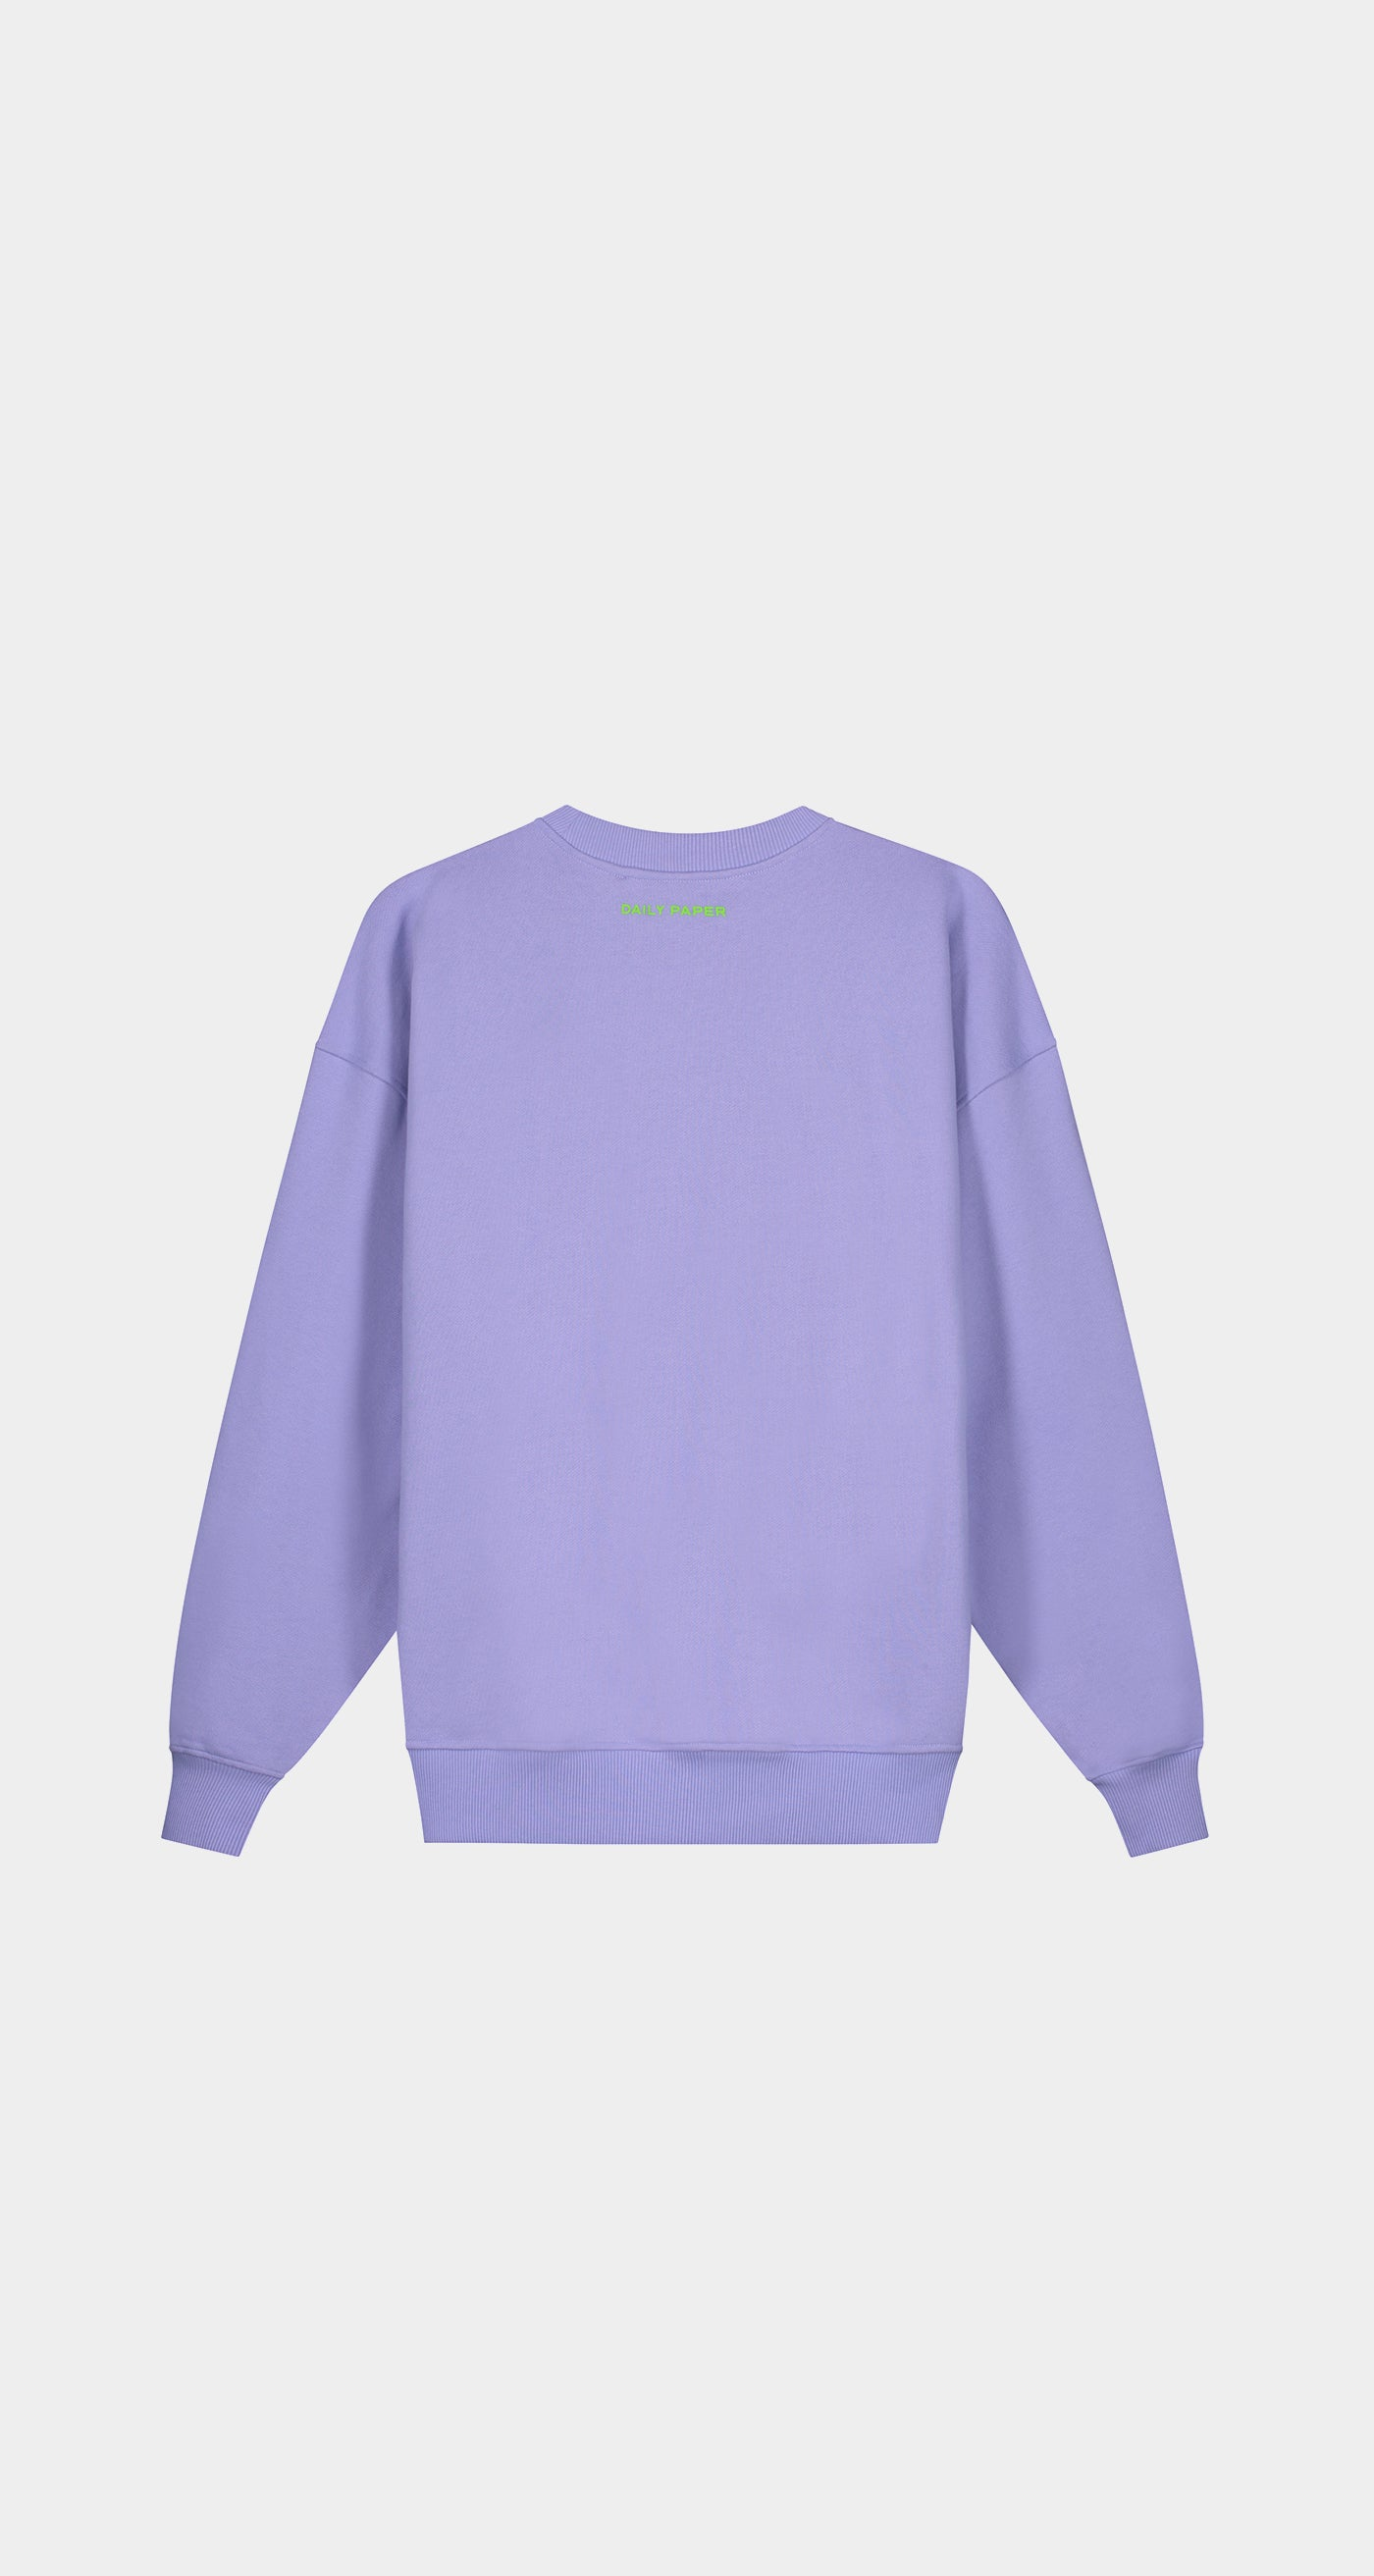 Daily Paper - Jacaranda Purple Kerjac Sweater - Men